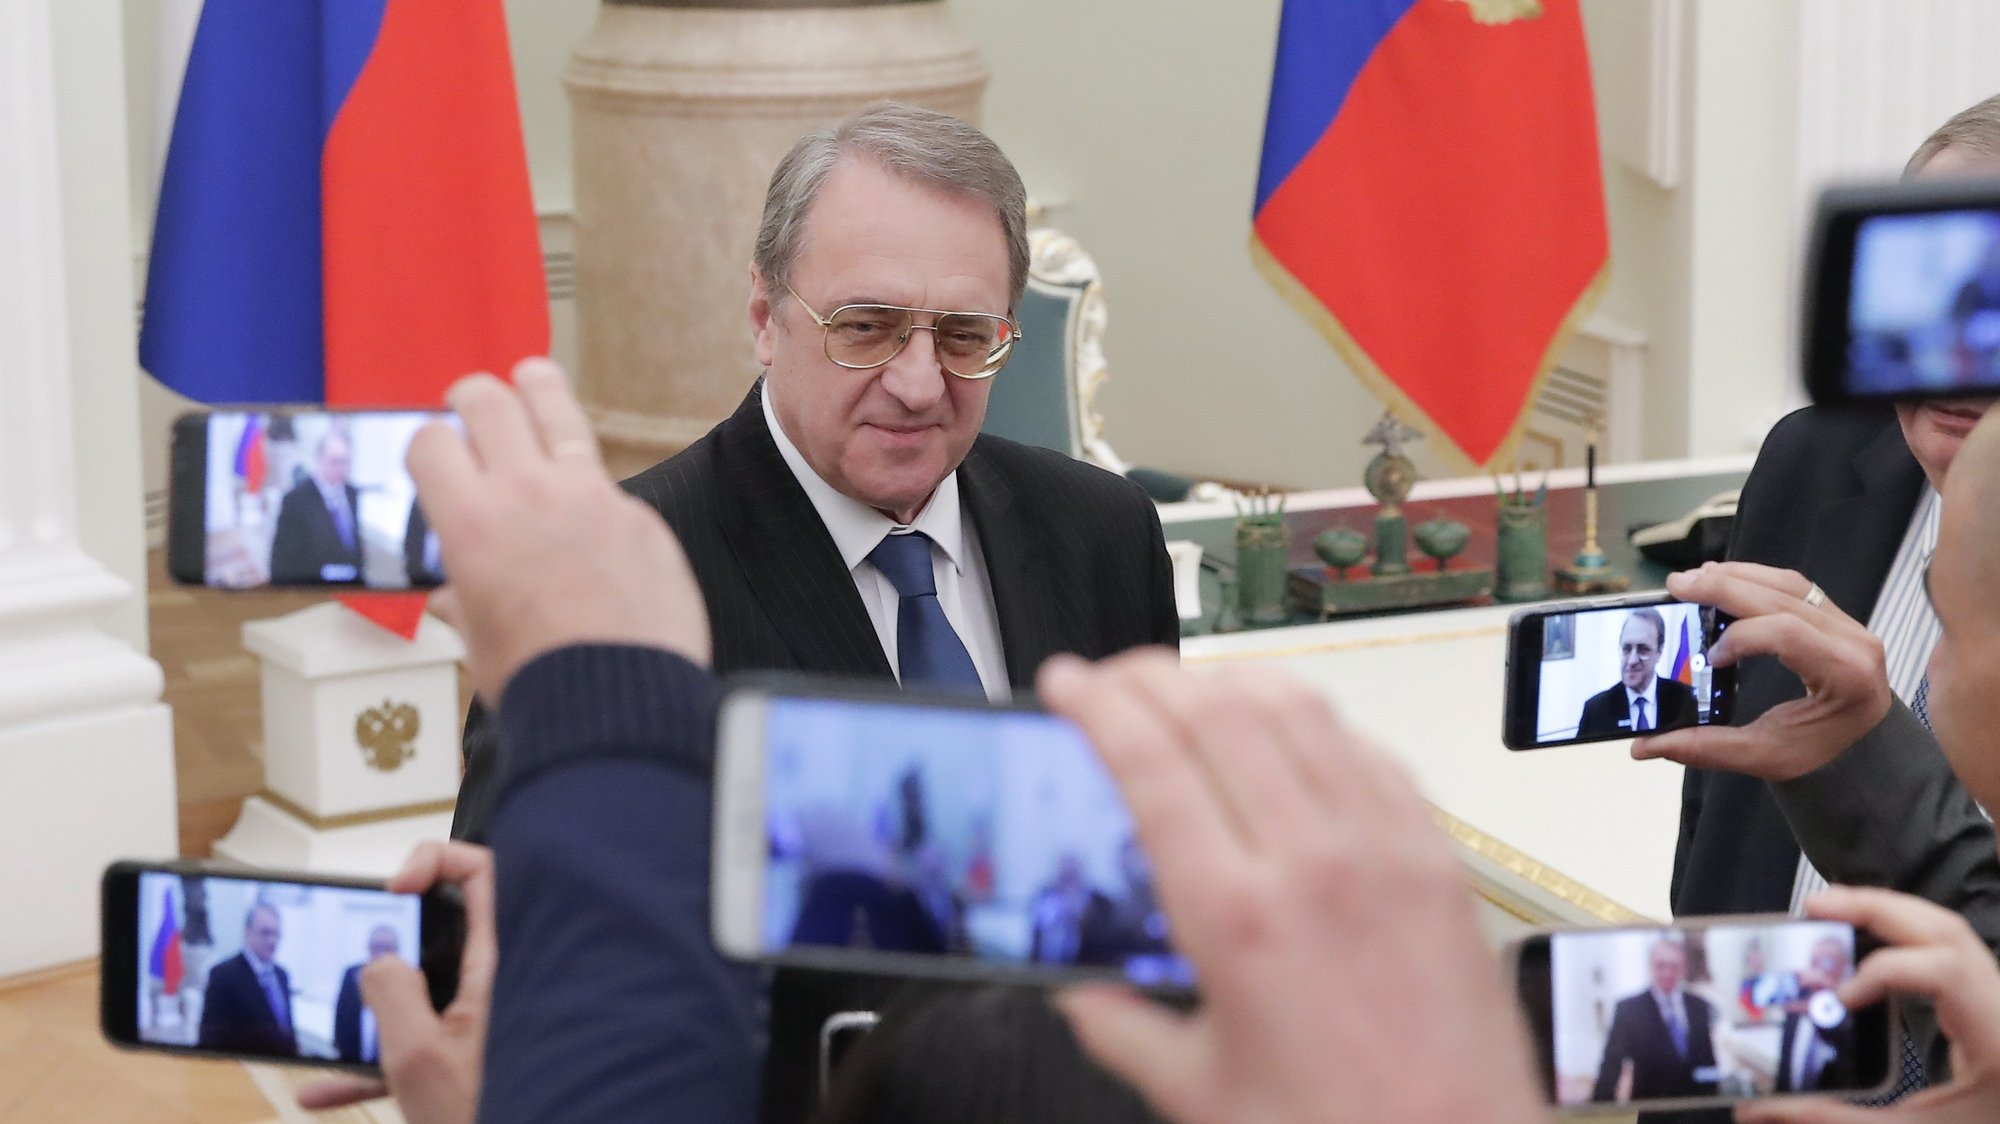 epa07401164 Russian Deputy Foreign Minister Mikhail Bogdanov speaks with journalists before a meeting of Russian Presidentwith Israeli Prime Minister at the Kremlin in Moscow,27  Russia February 2019. Benjamin Netanyahu is on a brief state visit.  EPA/MAXIM SHEMETOV / POOL